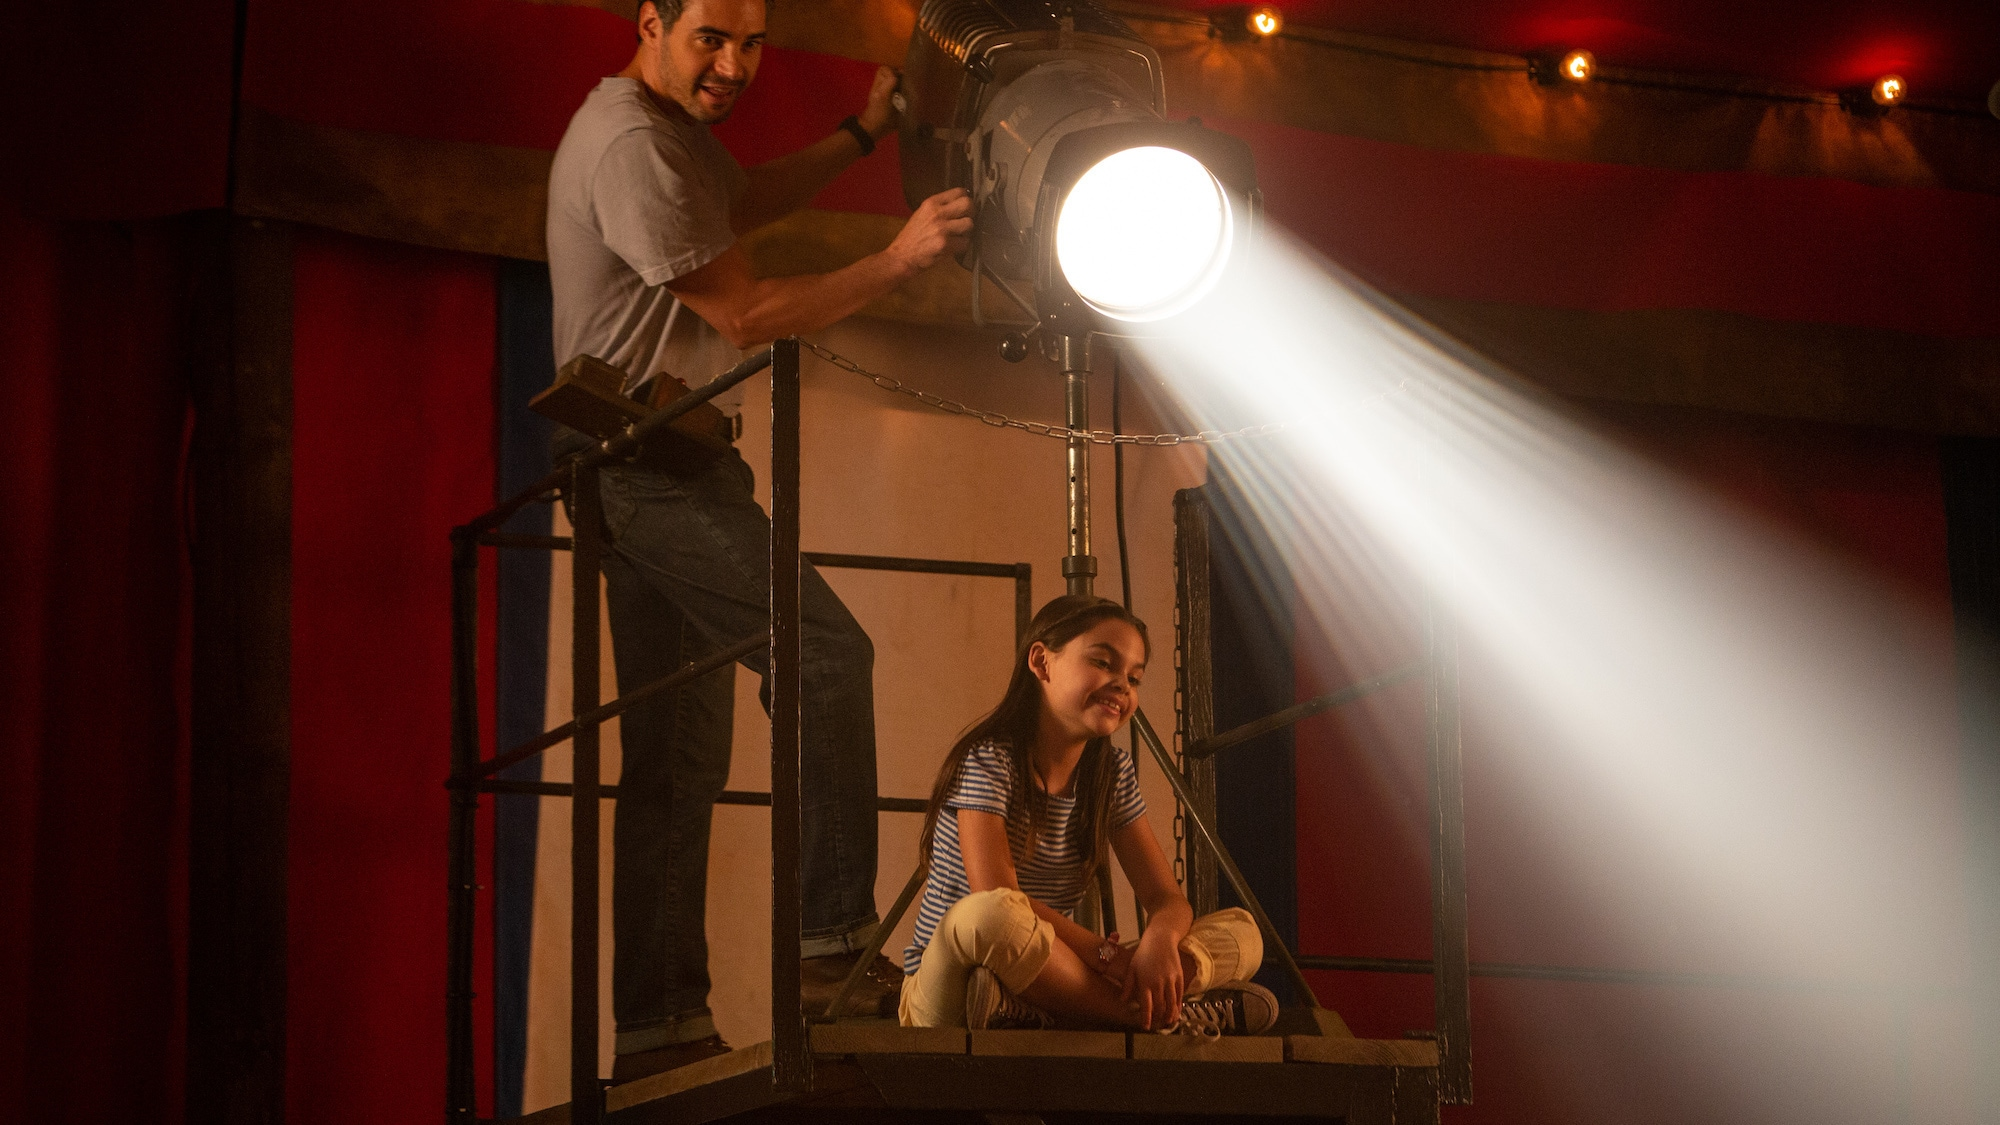 Ramón Rodríguez as George and Ariana Greenblatt as Julia in THE ONE AND ONLY IVAN, based on the award-winning book by Katherine Applegate and directed by Thea Sharrock. Photo courtesy of Disney. © 2020 Disney Enterprises, Inc. All Rights Reserved.